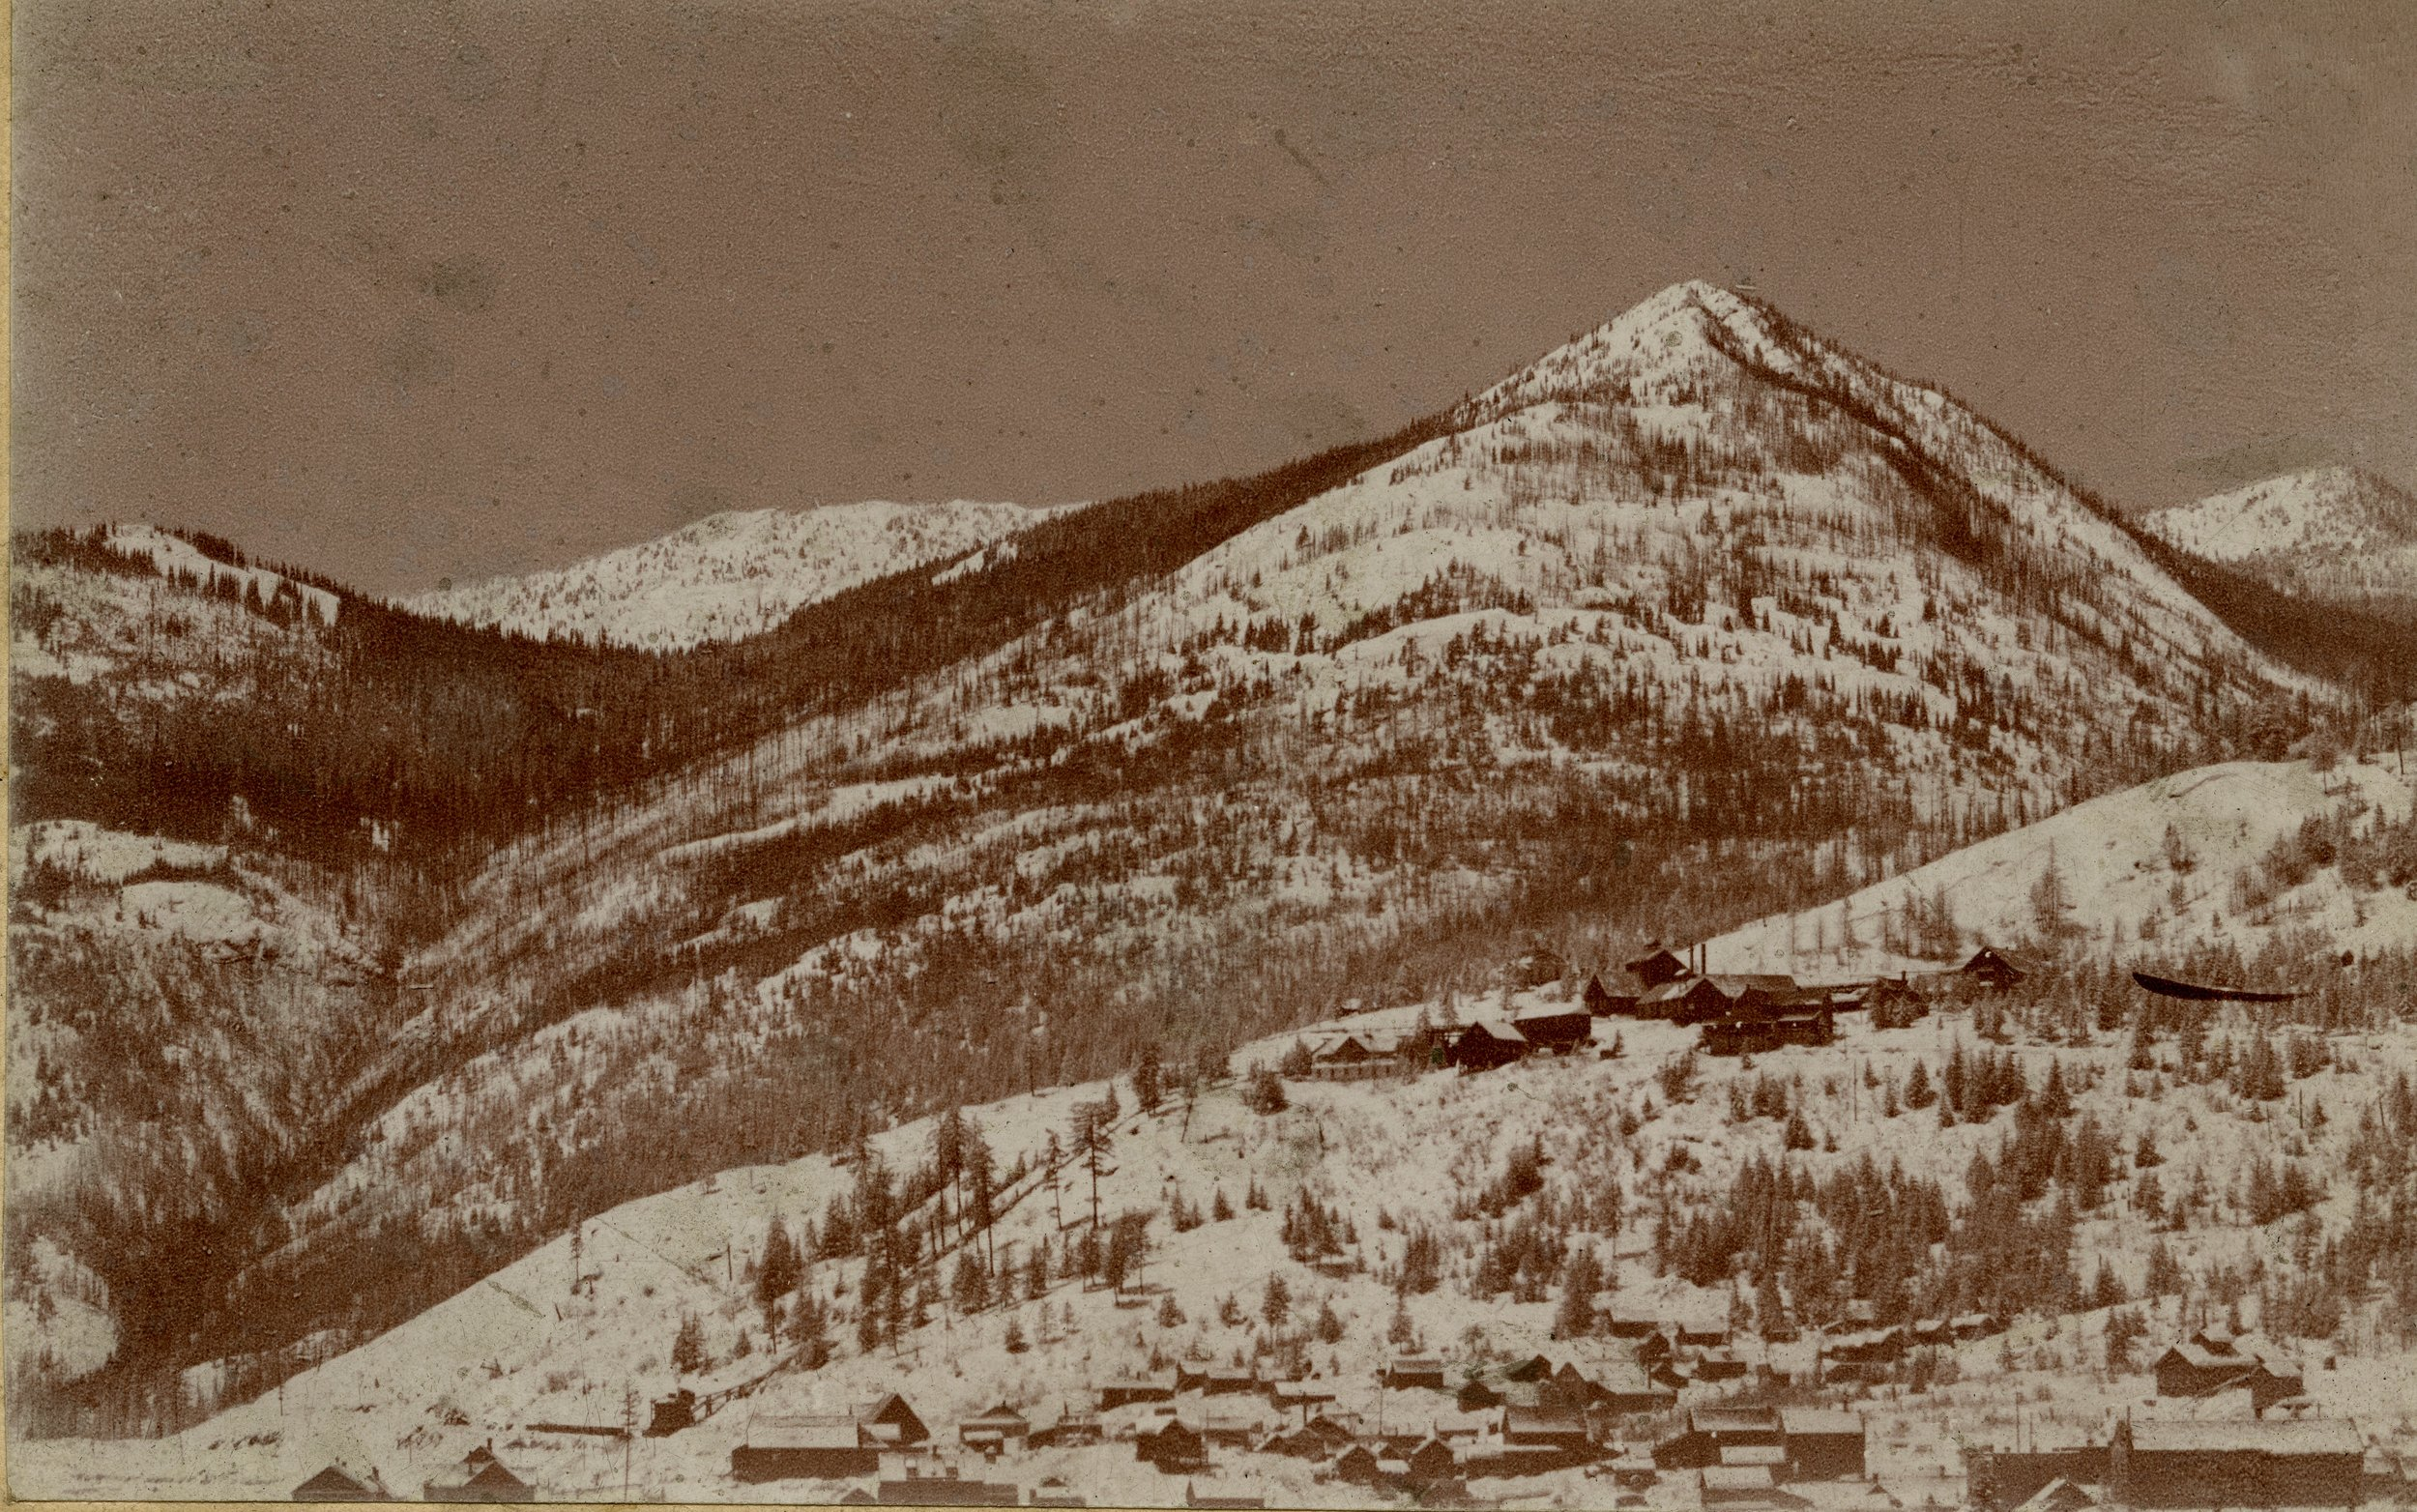 Photo 2311.0010: A moonlight view of Mount Spokane, taken January 9th, 1898. Mount Spokane was renamed Mount Roberts in June 1900 after the Boer War in honour of the famous British General - Lord Frederick Roberts.